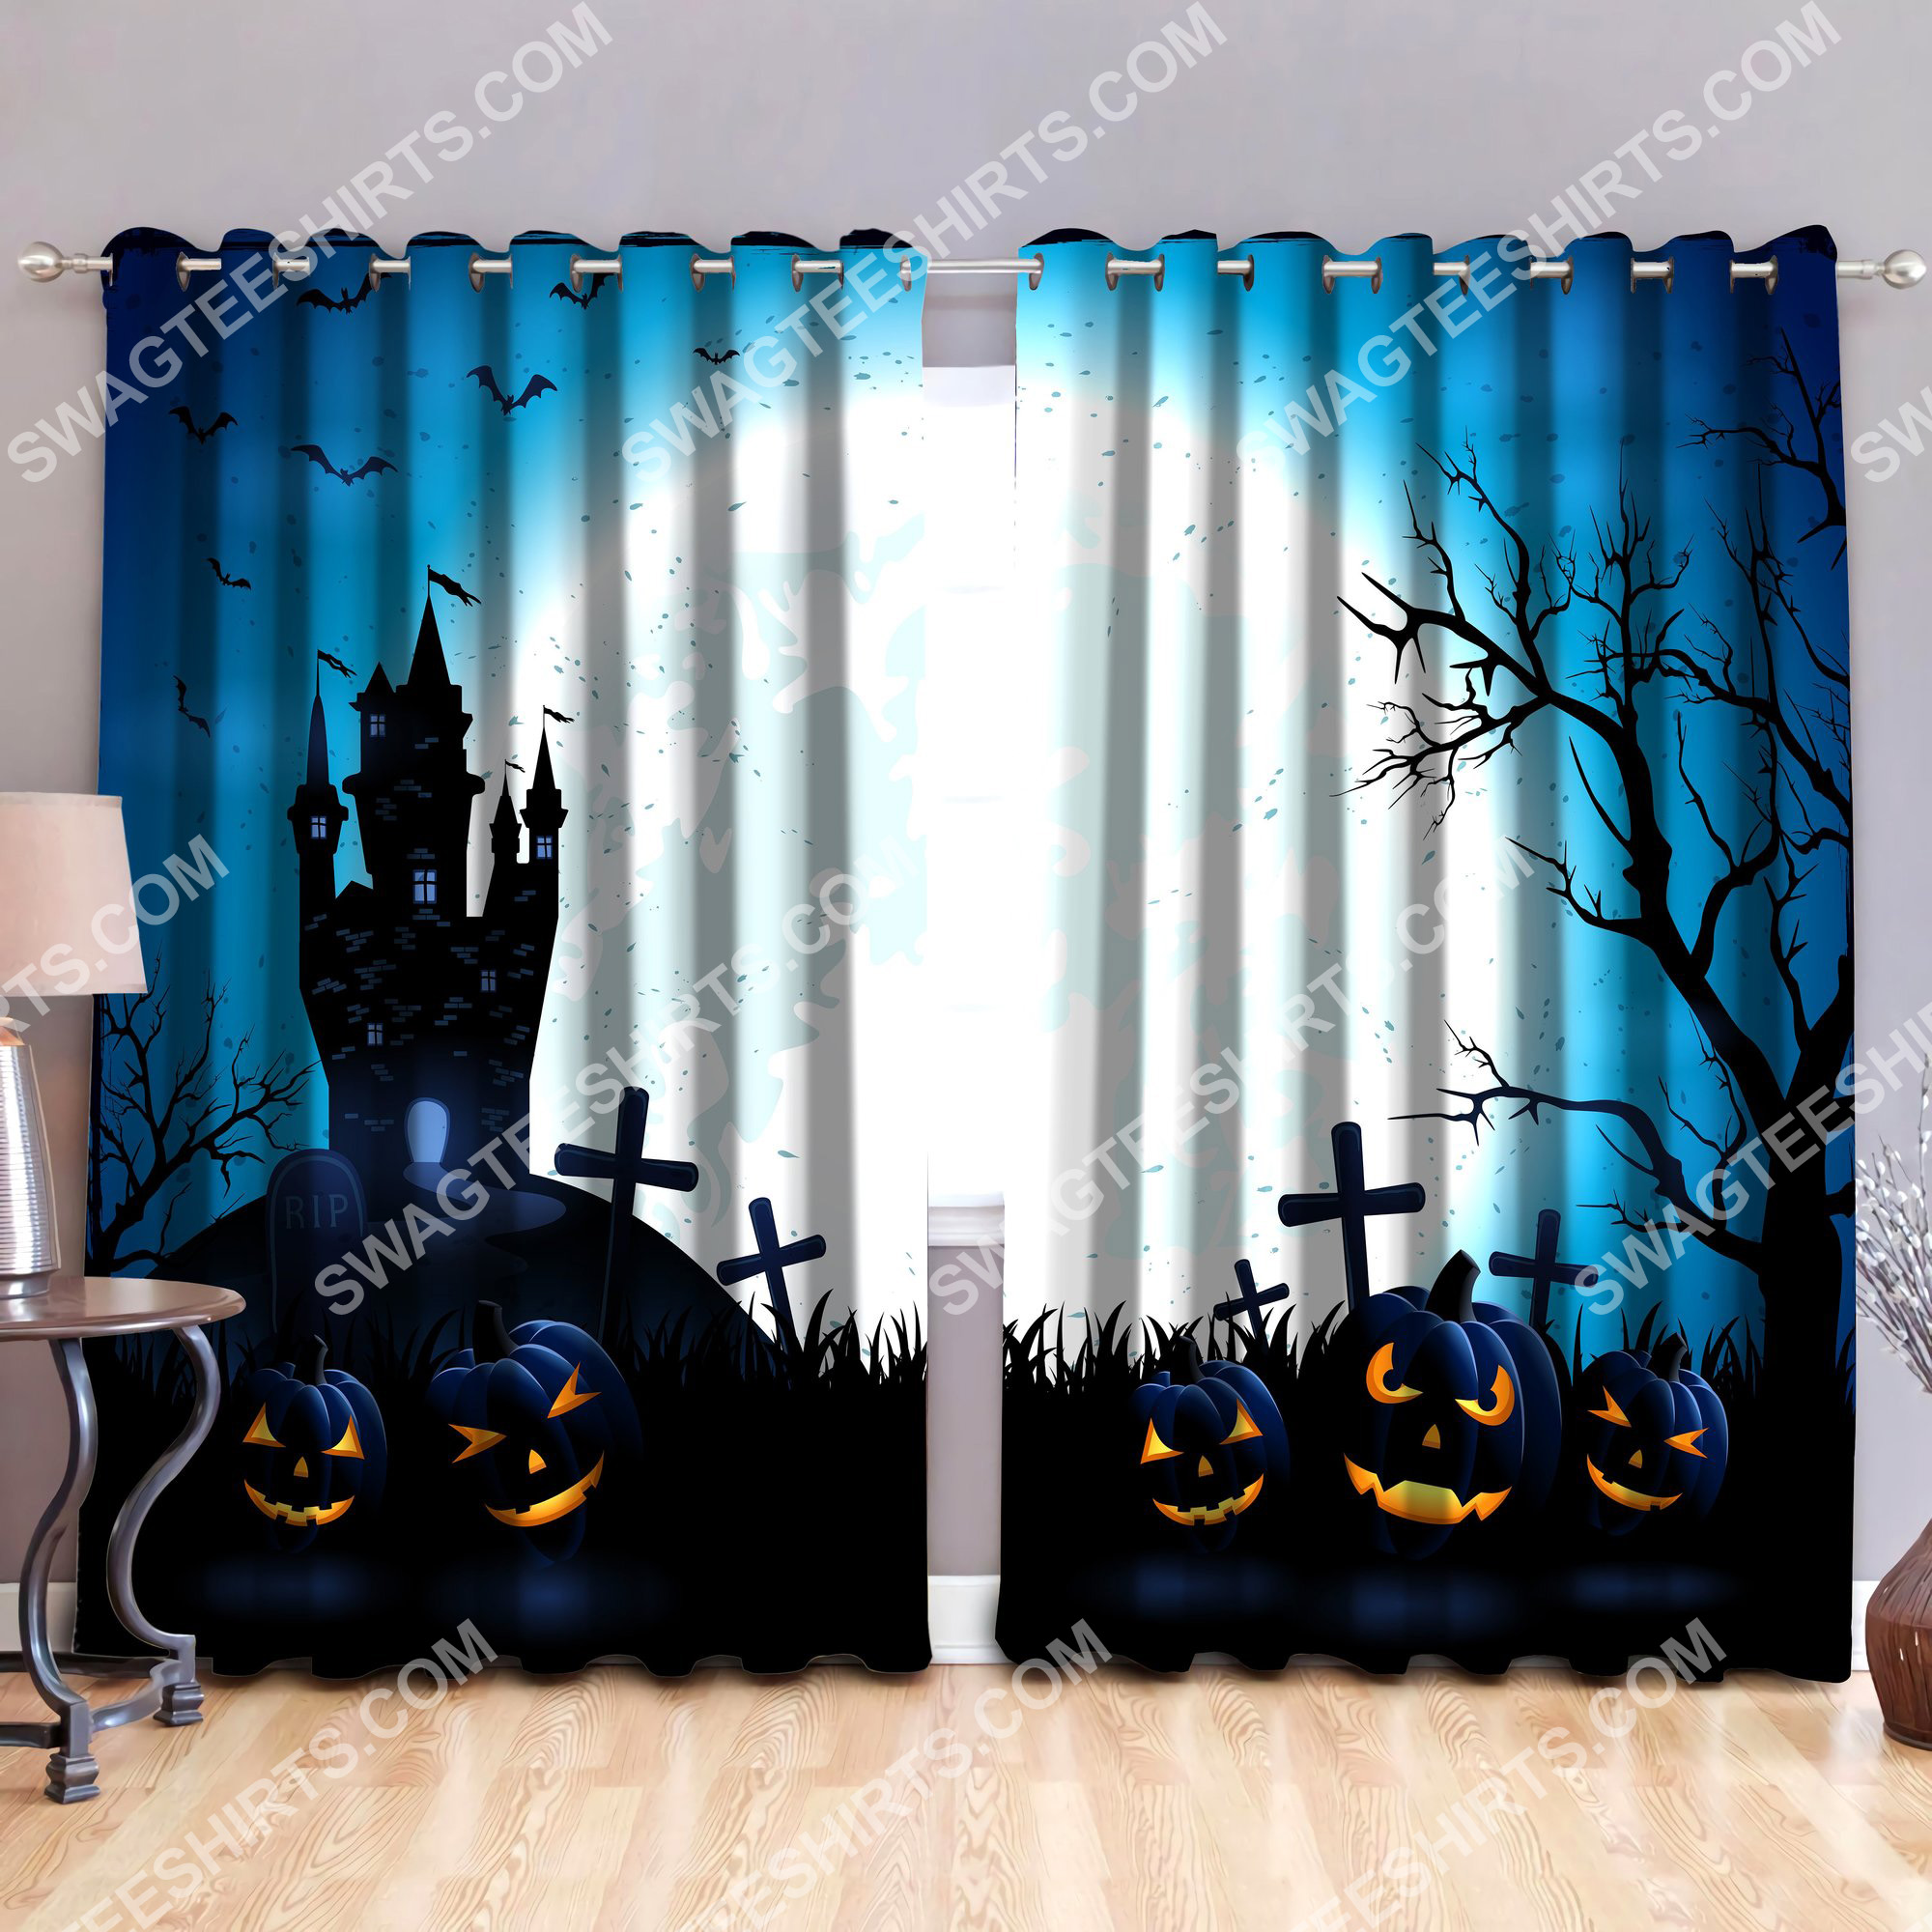 the halloween night all over printed window curtains 2(1)